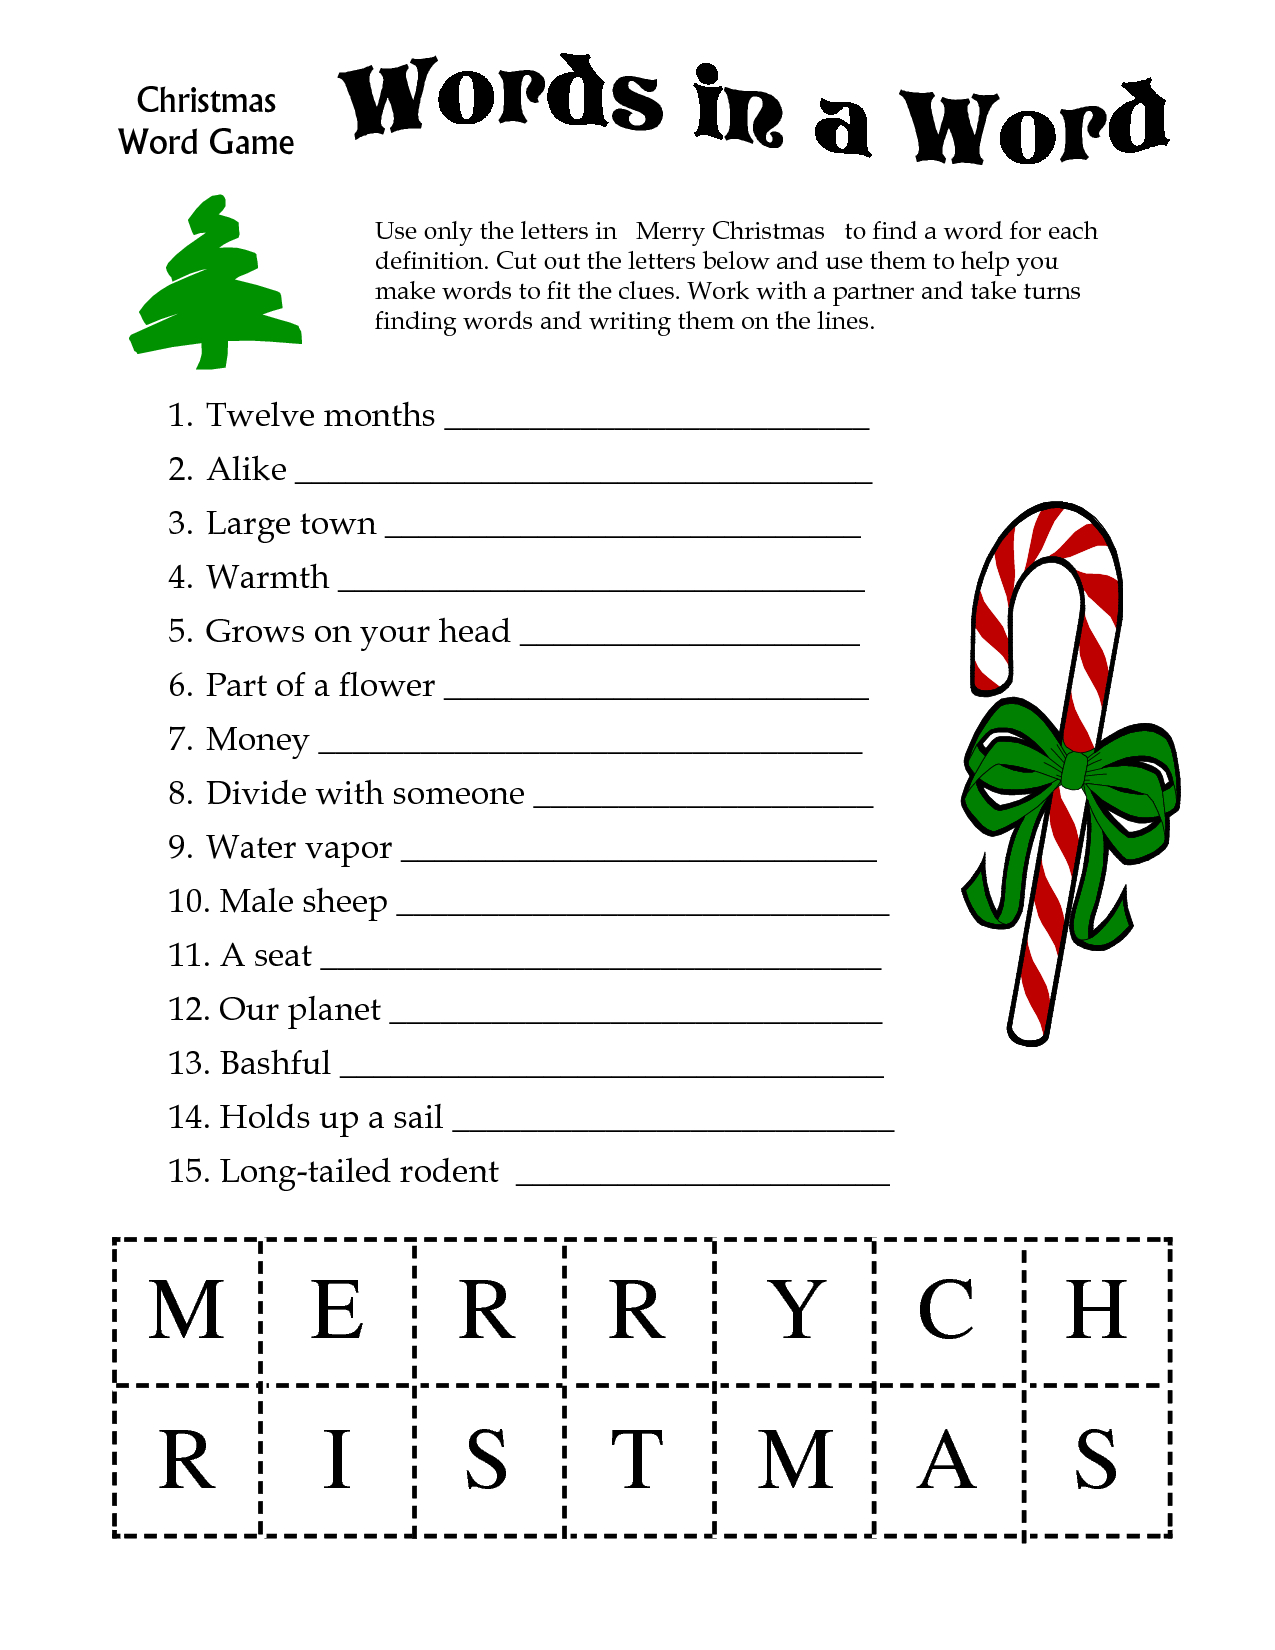 5 Images Of Free Printable Christmas Word Games | Printablee - Free Printable Christmas Games